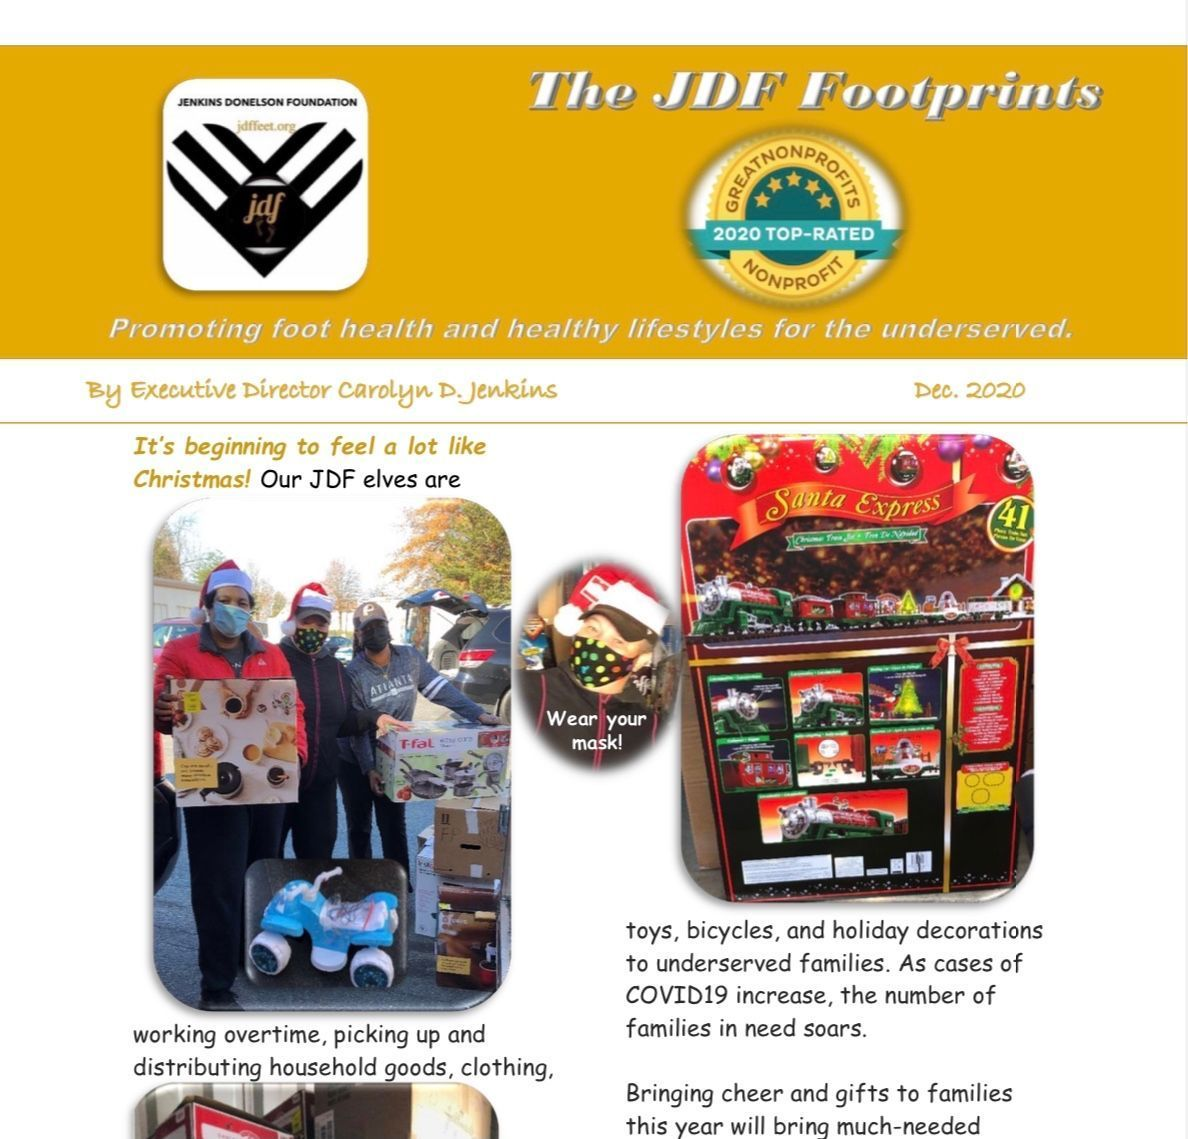 JDF elves are busy making deliveries to the #underserved for the #holidays. See our cute pix & quick story in the Dec The JDF Footprints.Text 2020DB to 44-321 to #donate. #Christmas #WednesdayMorning #WednesdayMotivation #wednesdaythought #CaptureKindness